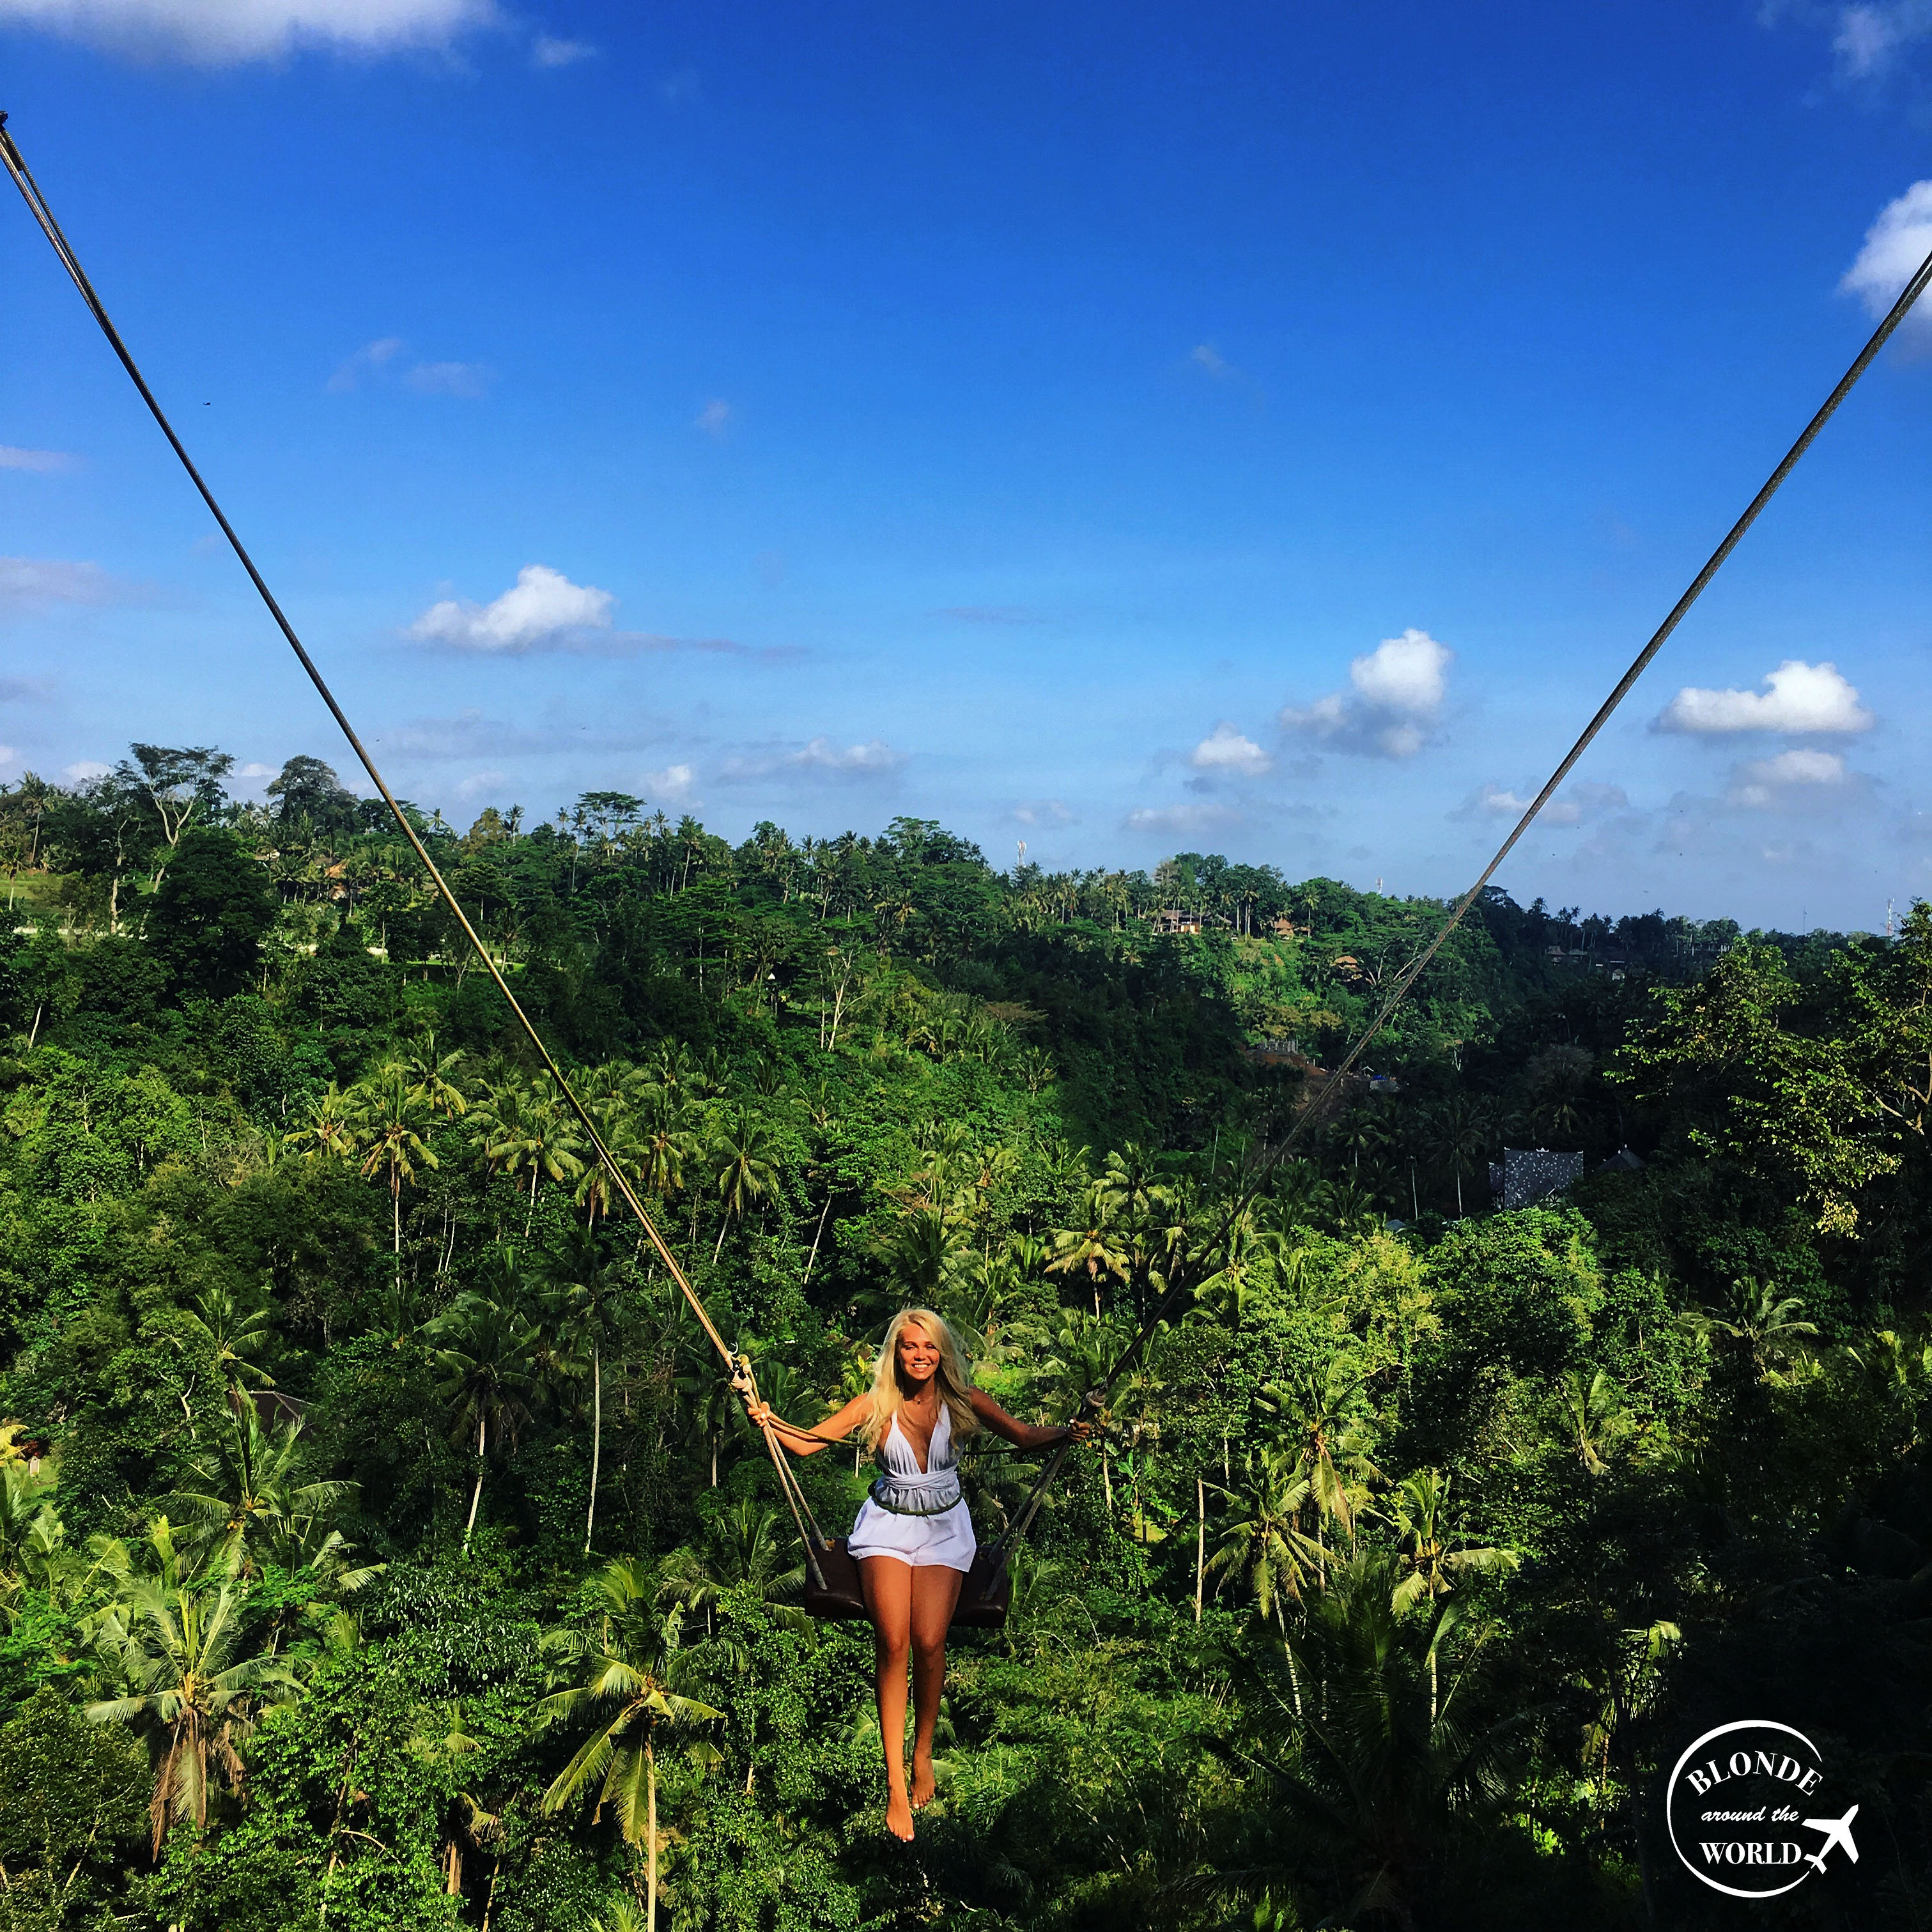 ubud-swing-face.JPG